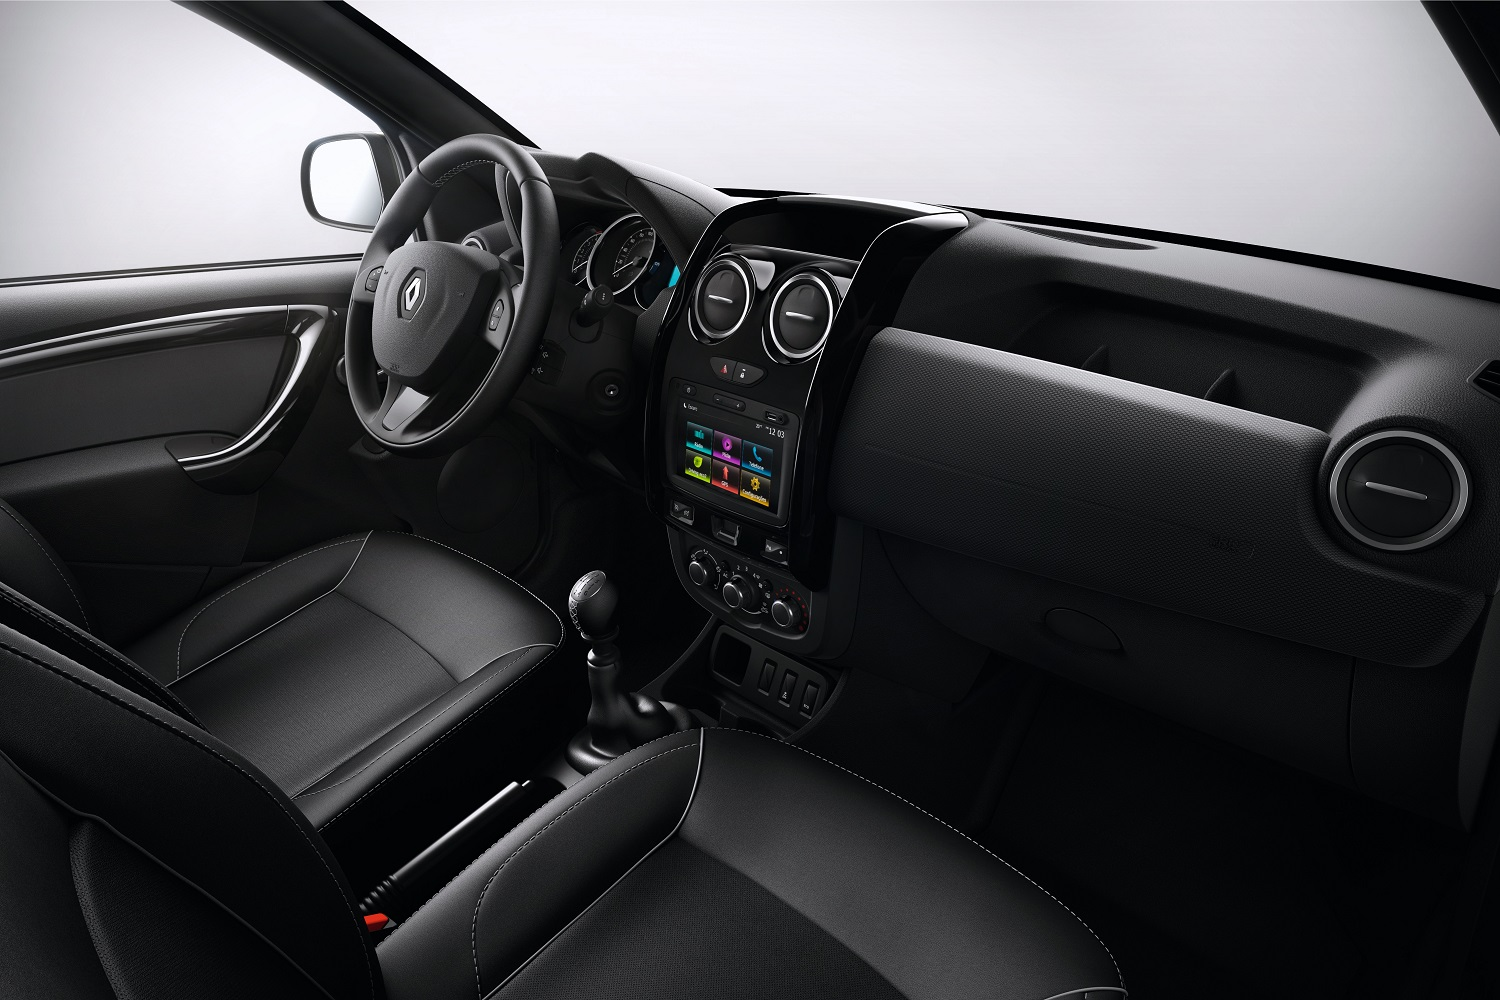 E2 VERSION - DASHBOARD - FABRIC UPHOLSTERY - 6 MANUAL GEARBOX - MEDIA NAV EVOLUTION